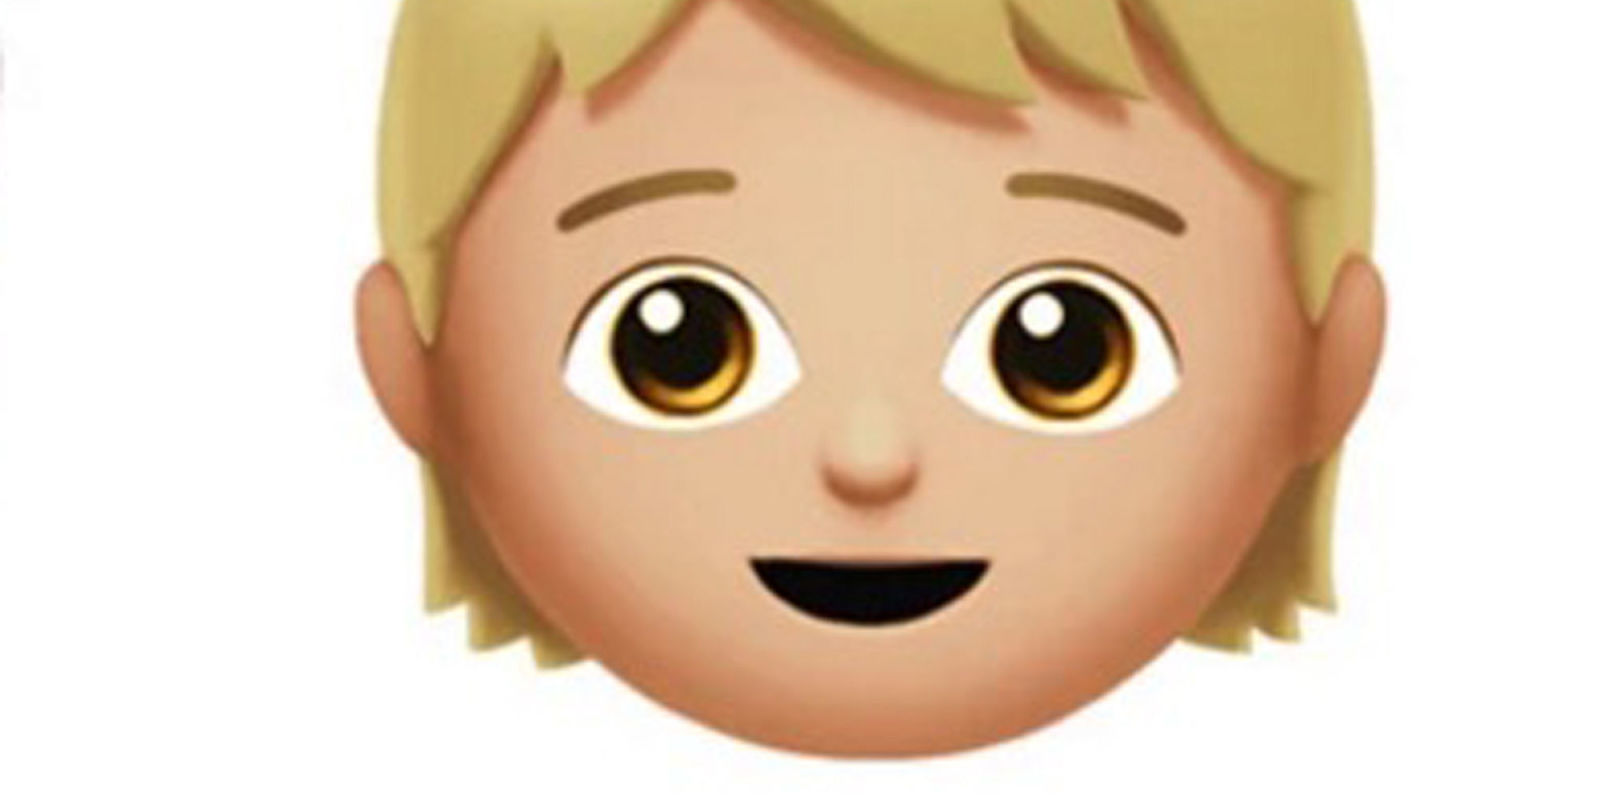 New Emojis Including Gender Neutral Faces Added To IOS11